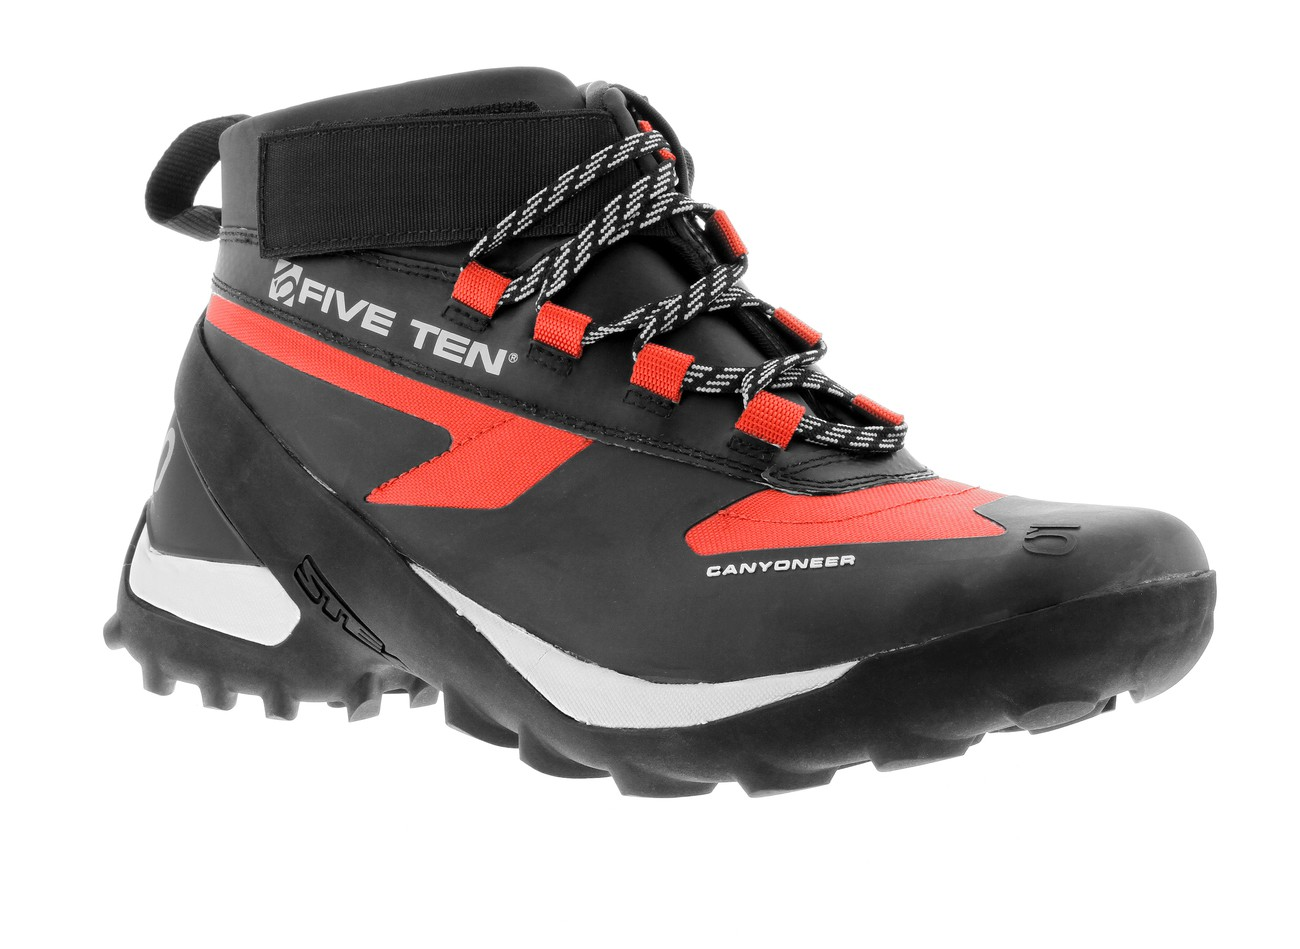 FiveTen Canyoneer canyoning shoes